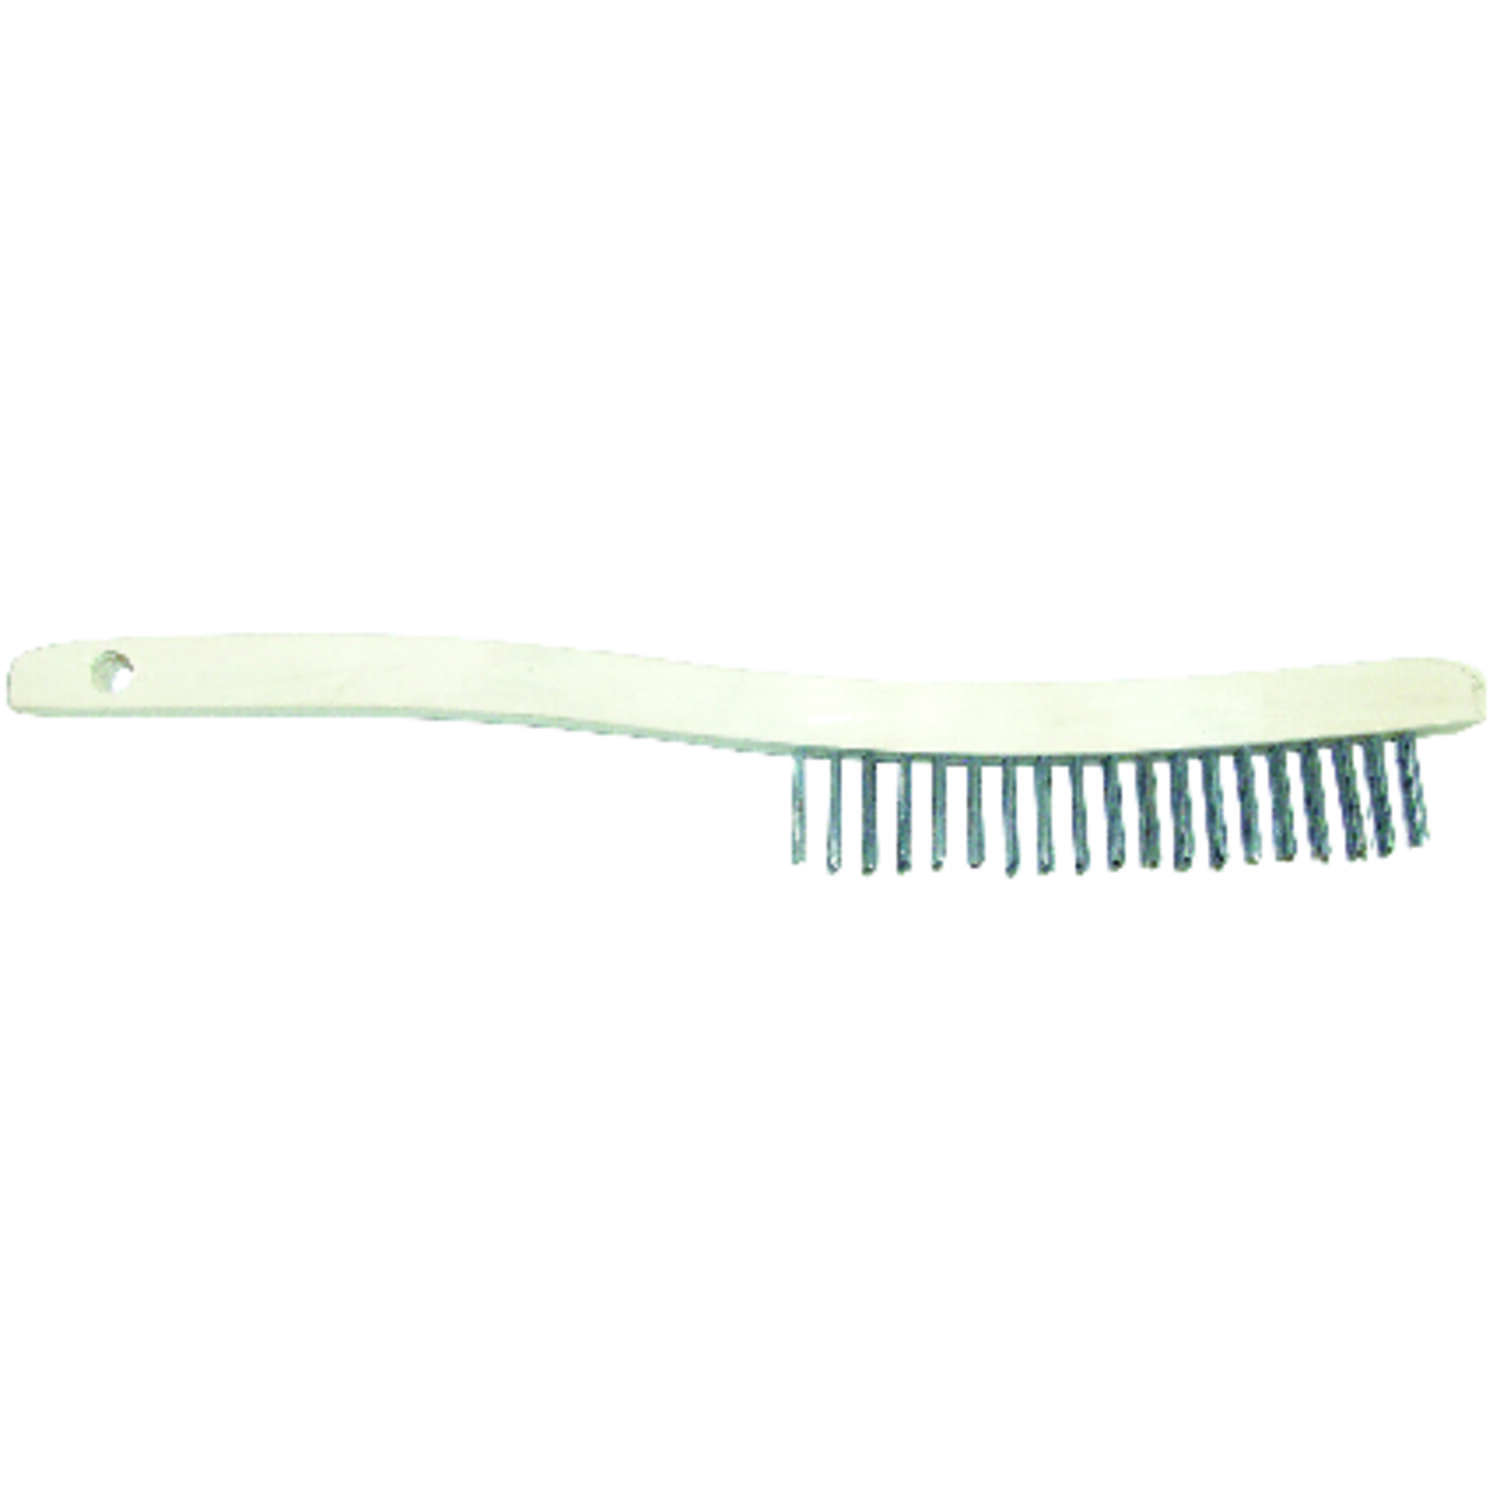 Allway 7/8 in. W x 1 in. L Carbon Steel Wire Brush